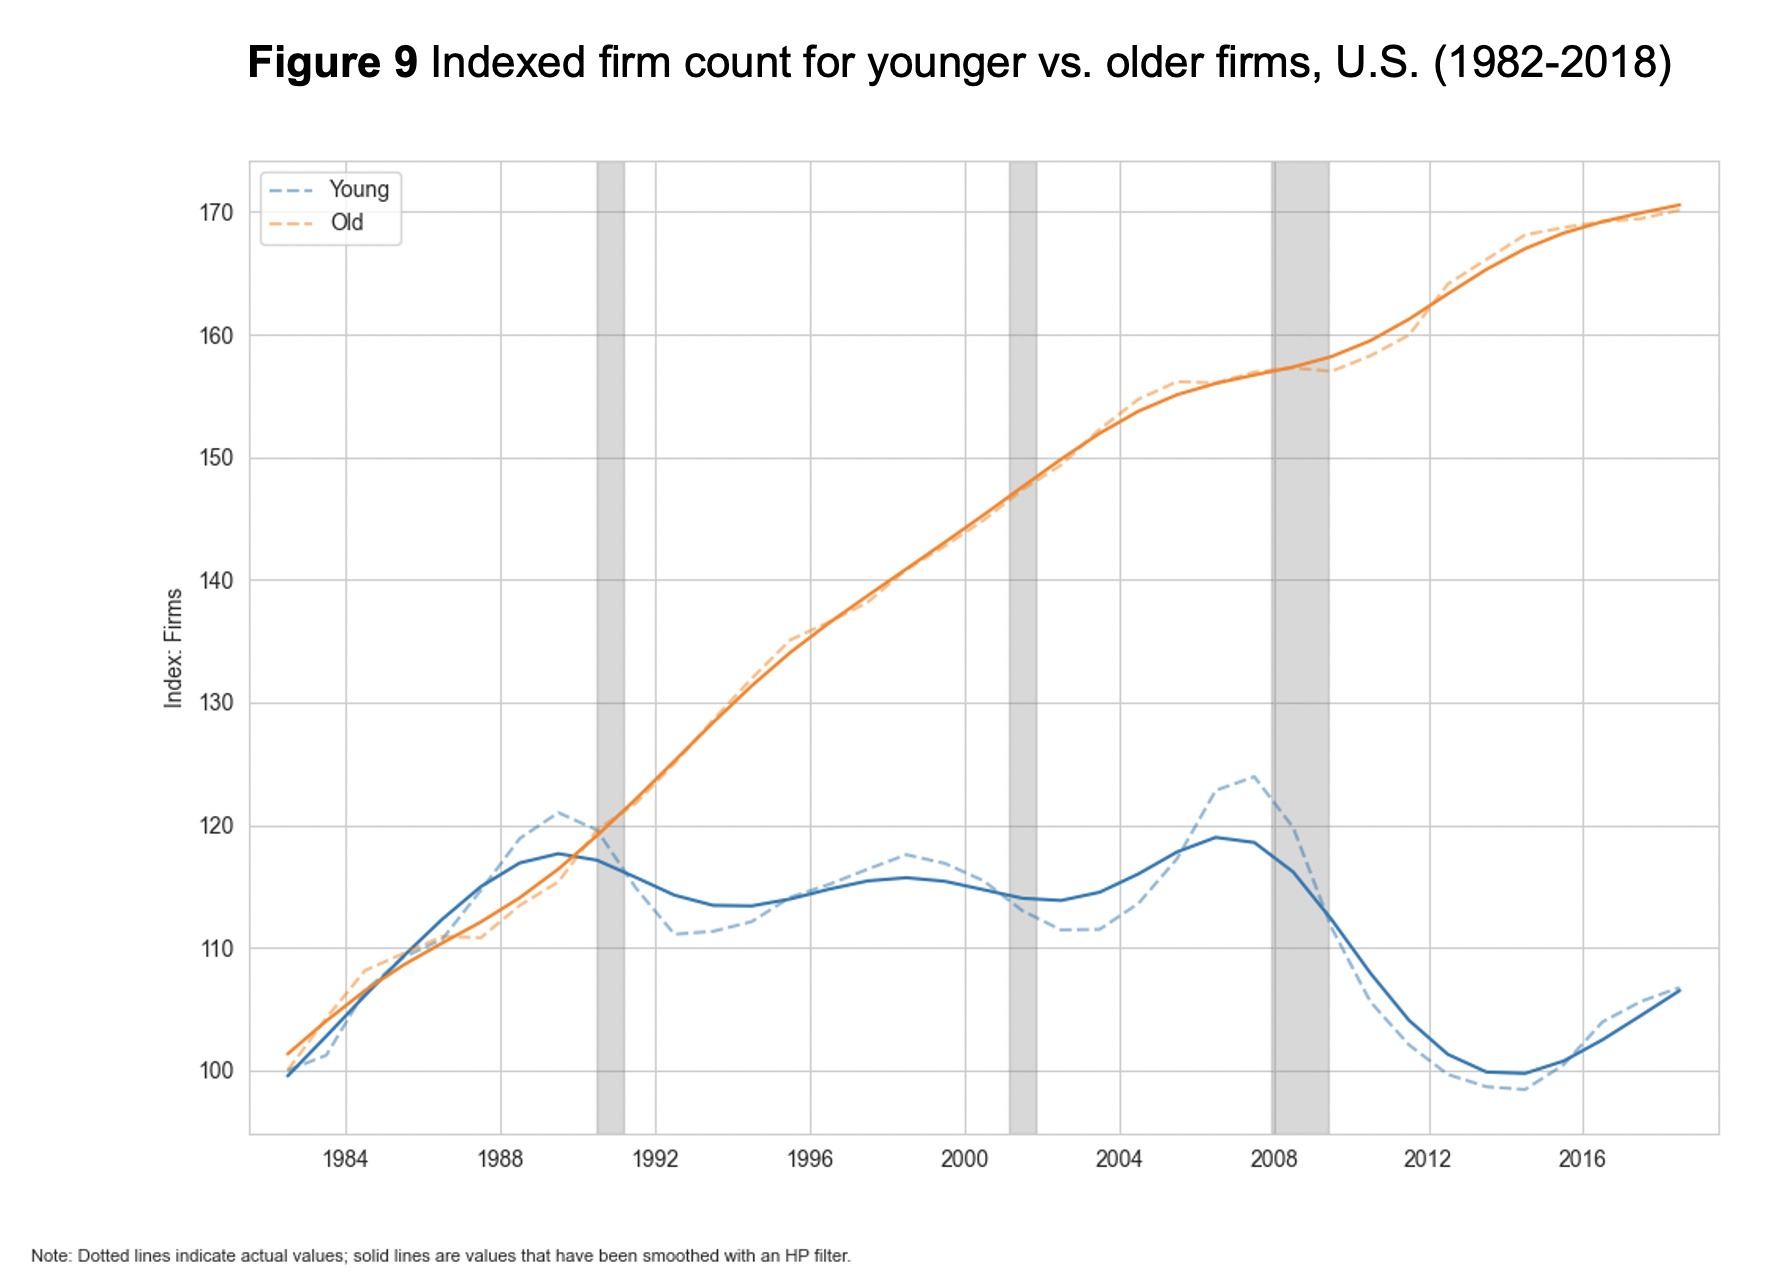 Figure 9: Indexed firm count for younger vs. older firms, U.S. (1982-2018)